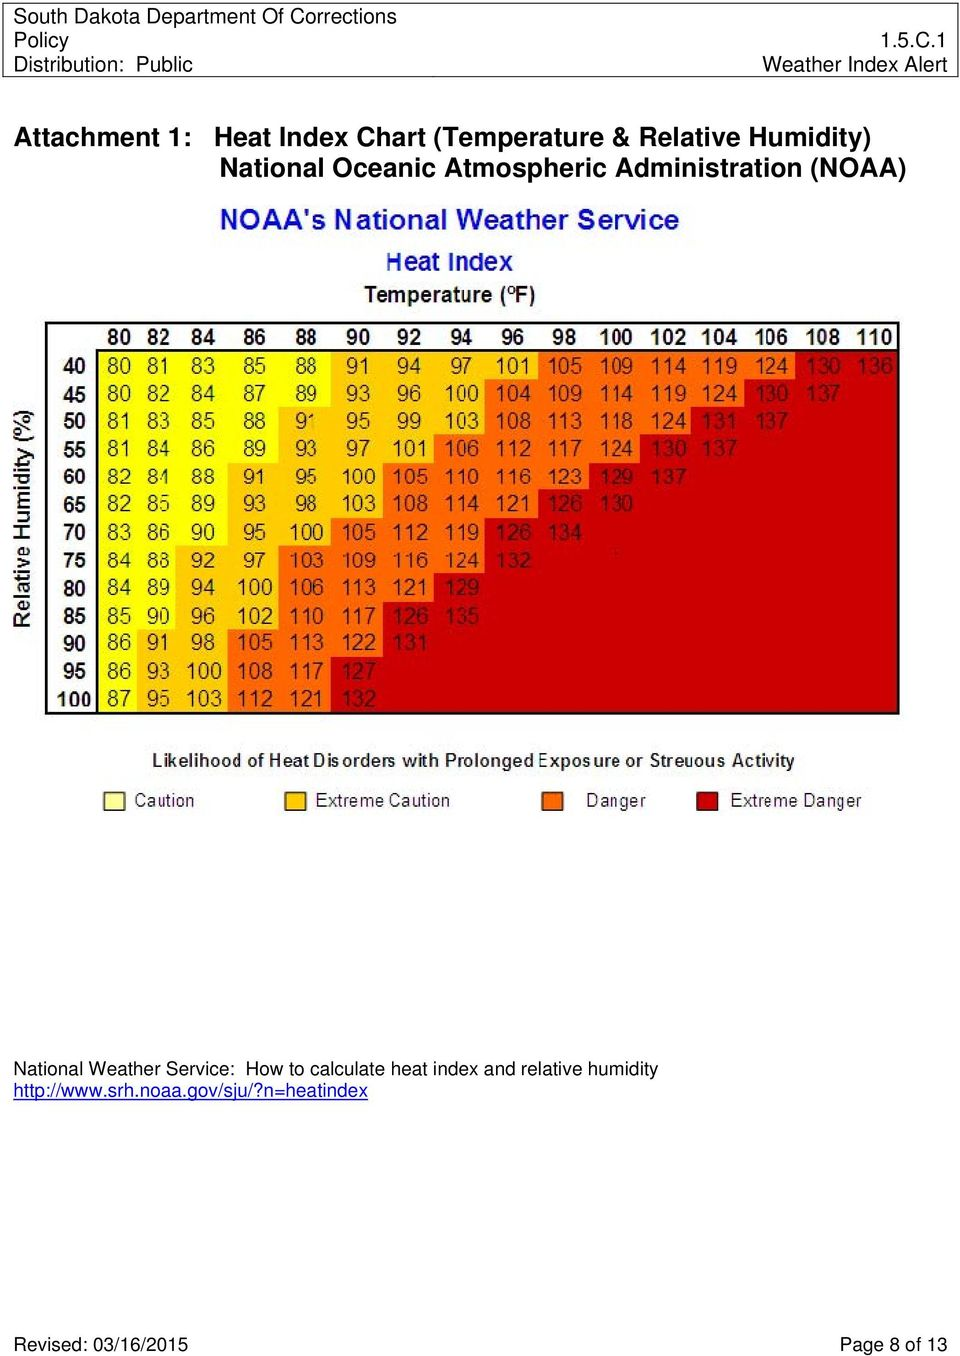 Weather Service: How to calculate heat index and relative humidity